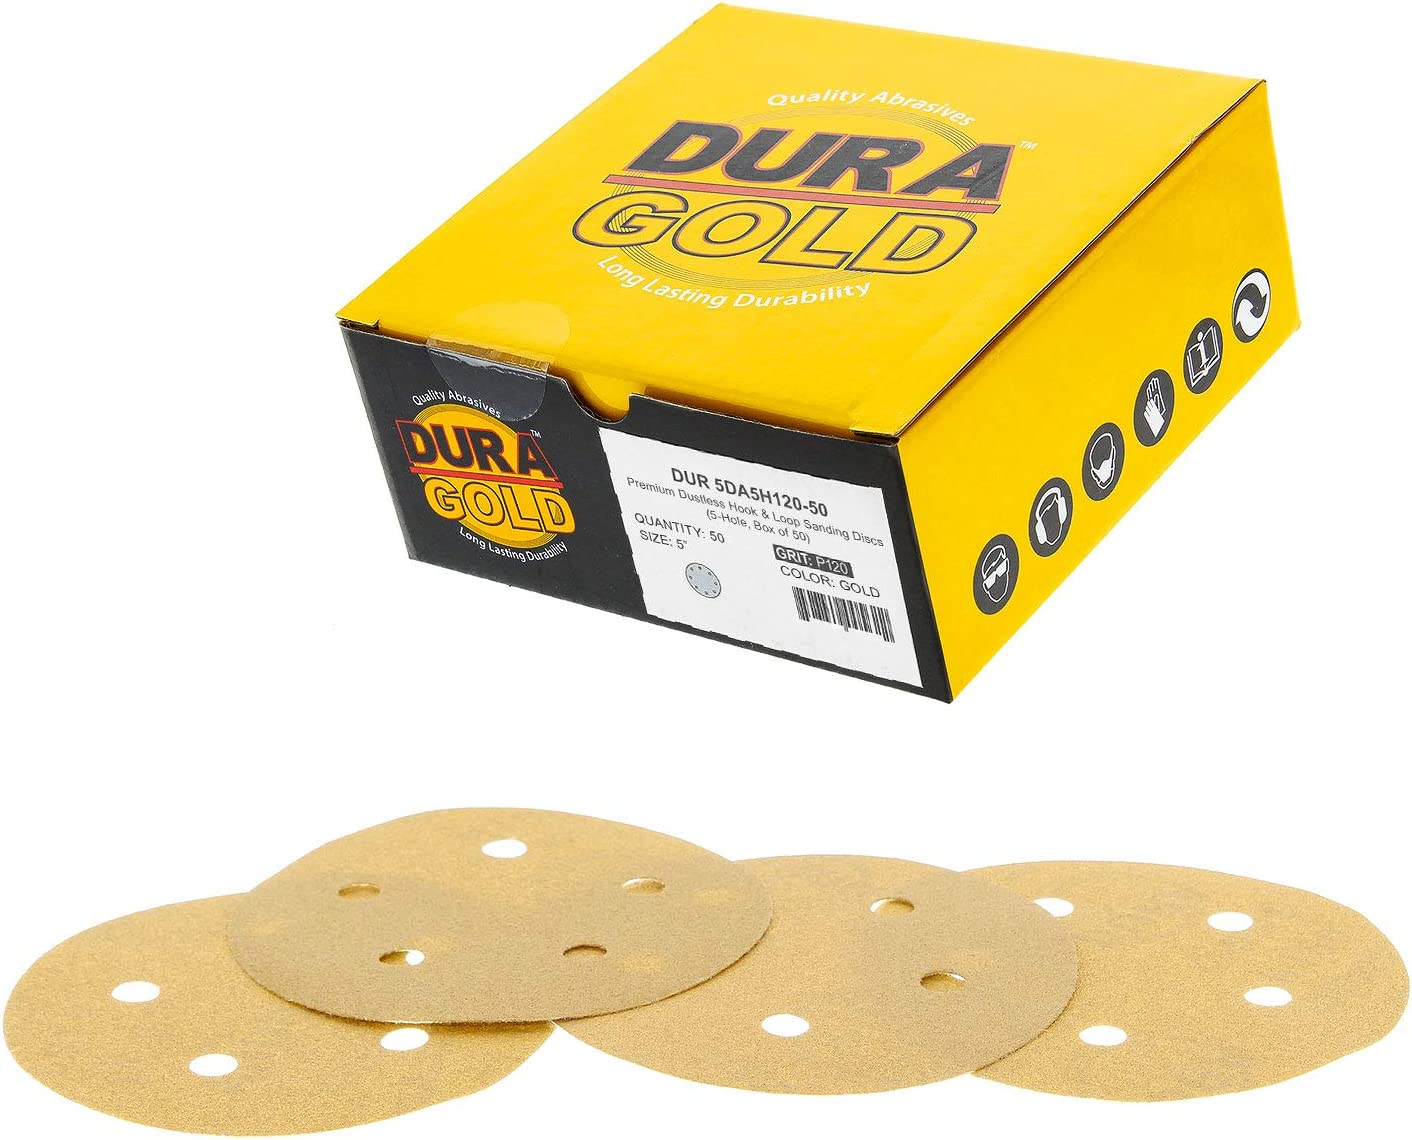 """Dura-Gold - Premium - 120 Grit - 5"""" Gold Sanding Discs - 5-Hole Dustless Hook and Loop for DA Sander - Box of 50 Finishing Sandpaper Discs for Woodworking or Automotive"""